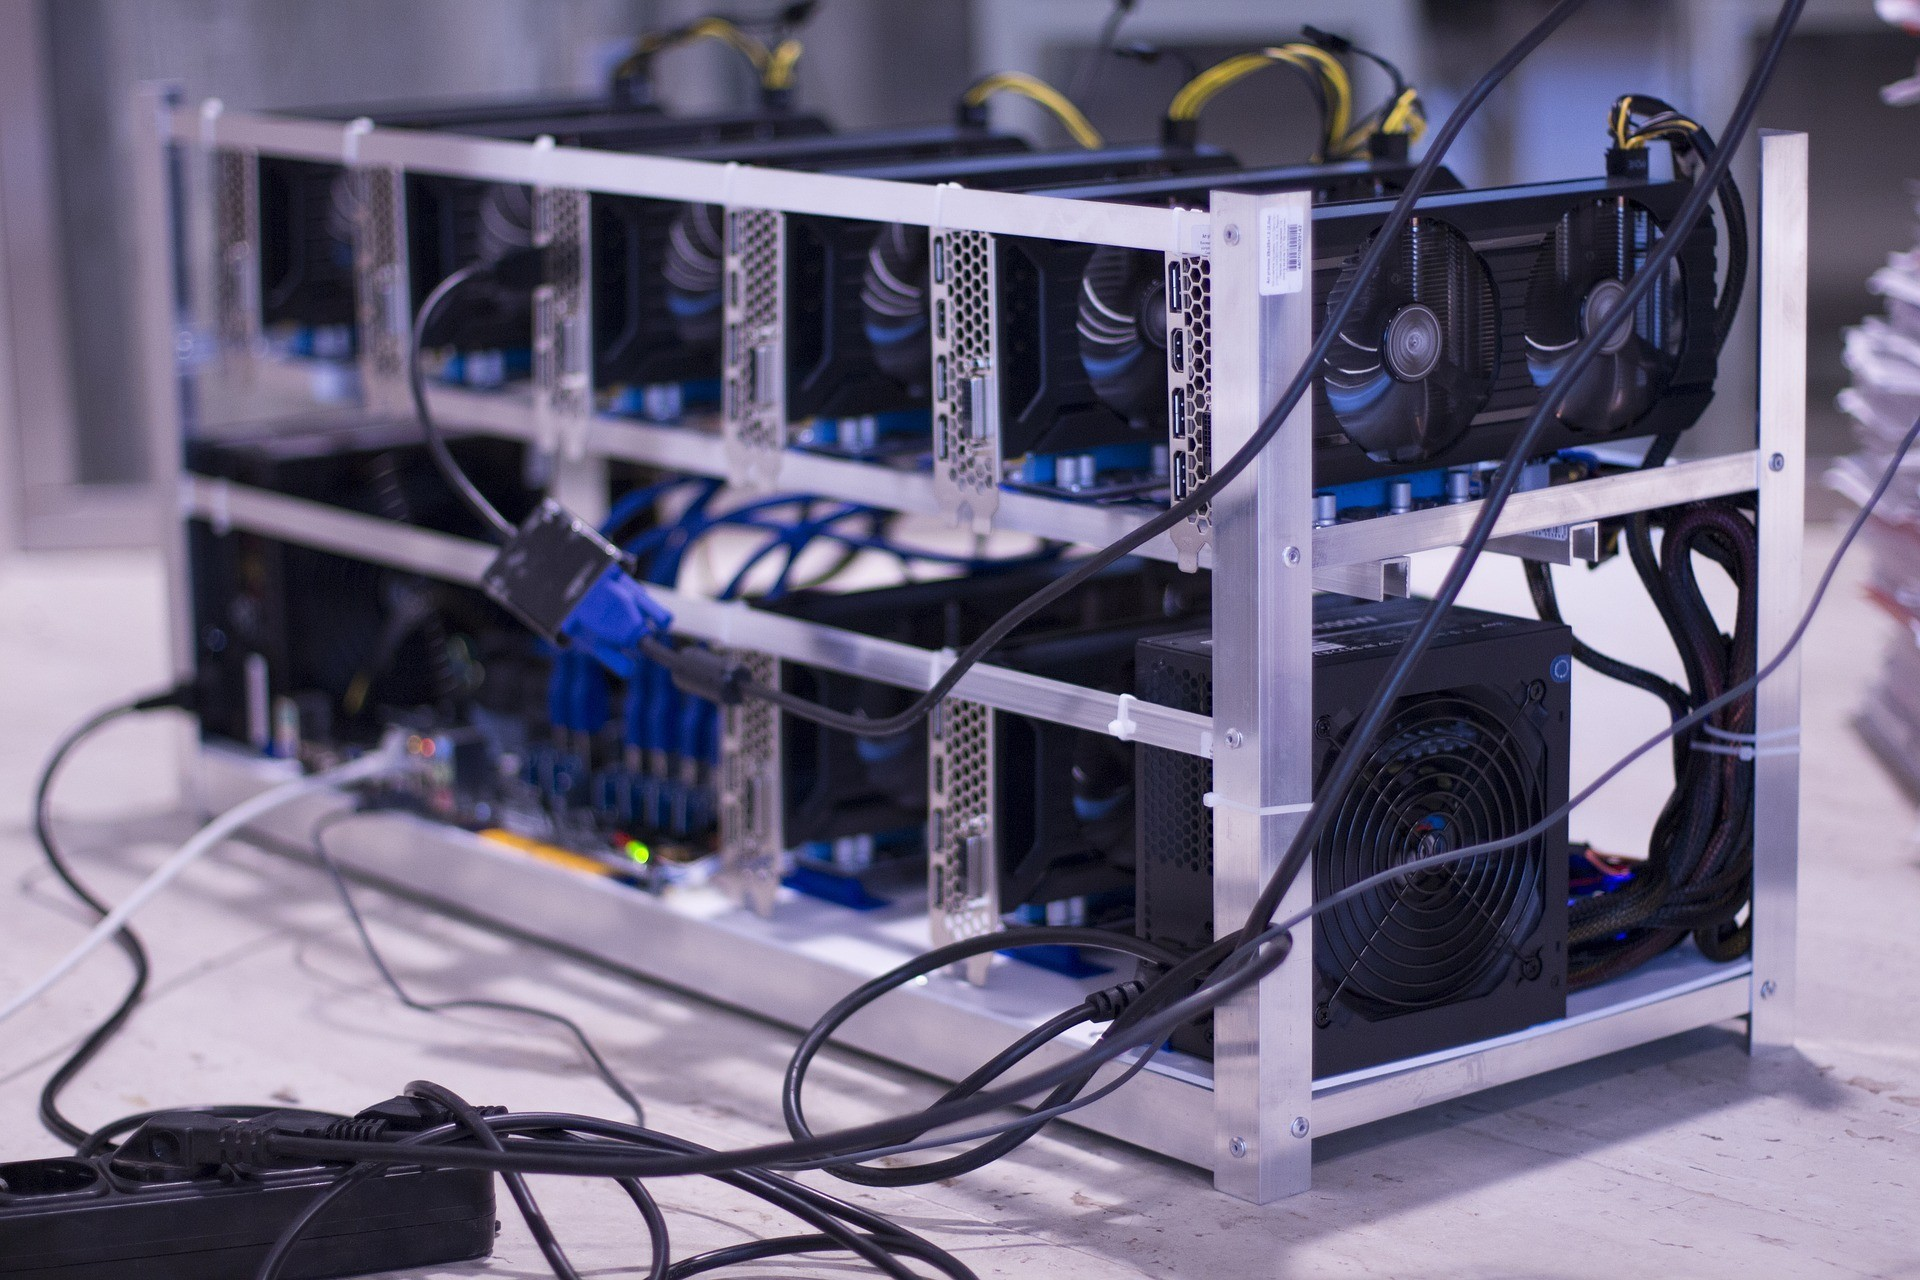 The energy that powers Bitcoin mining is already as much as 78% renewable